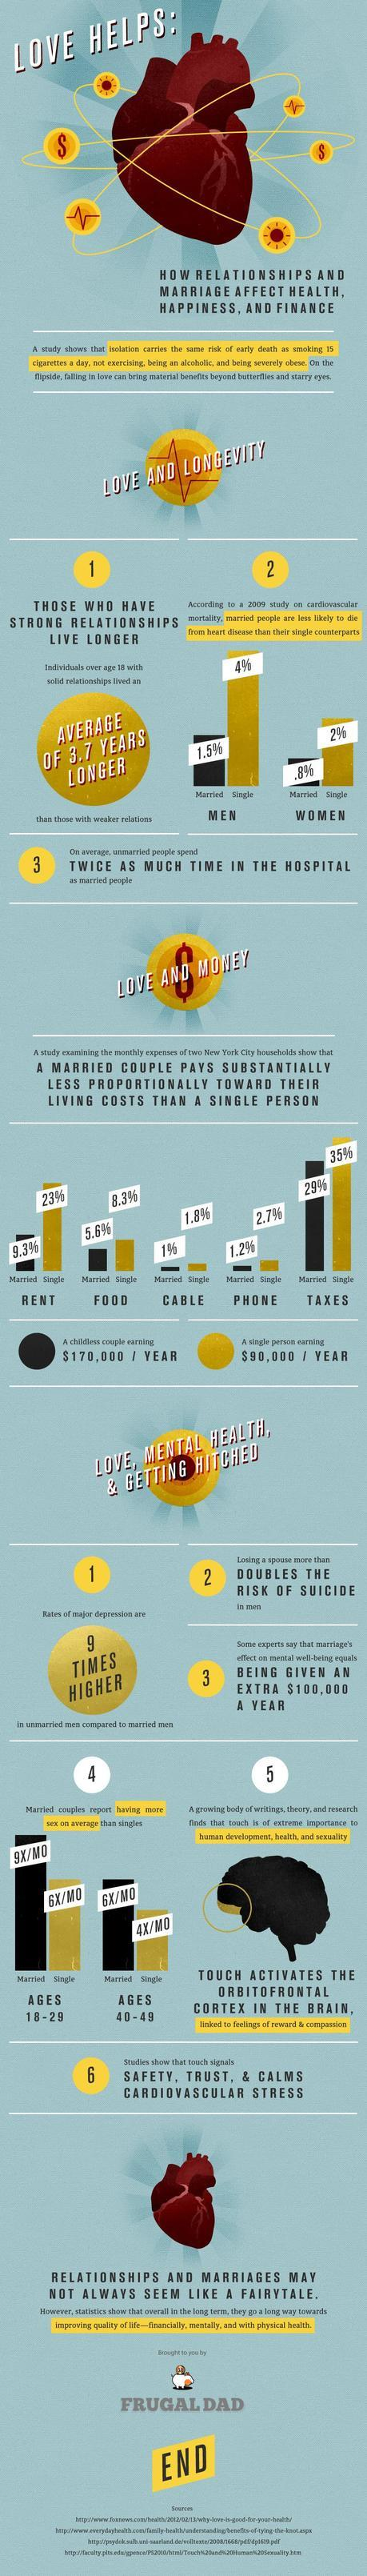 love helps infographic